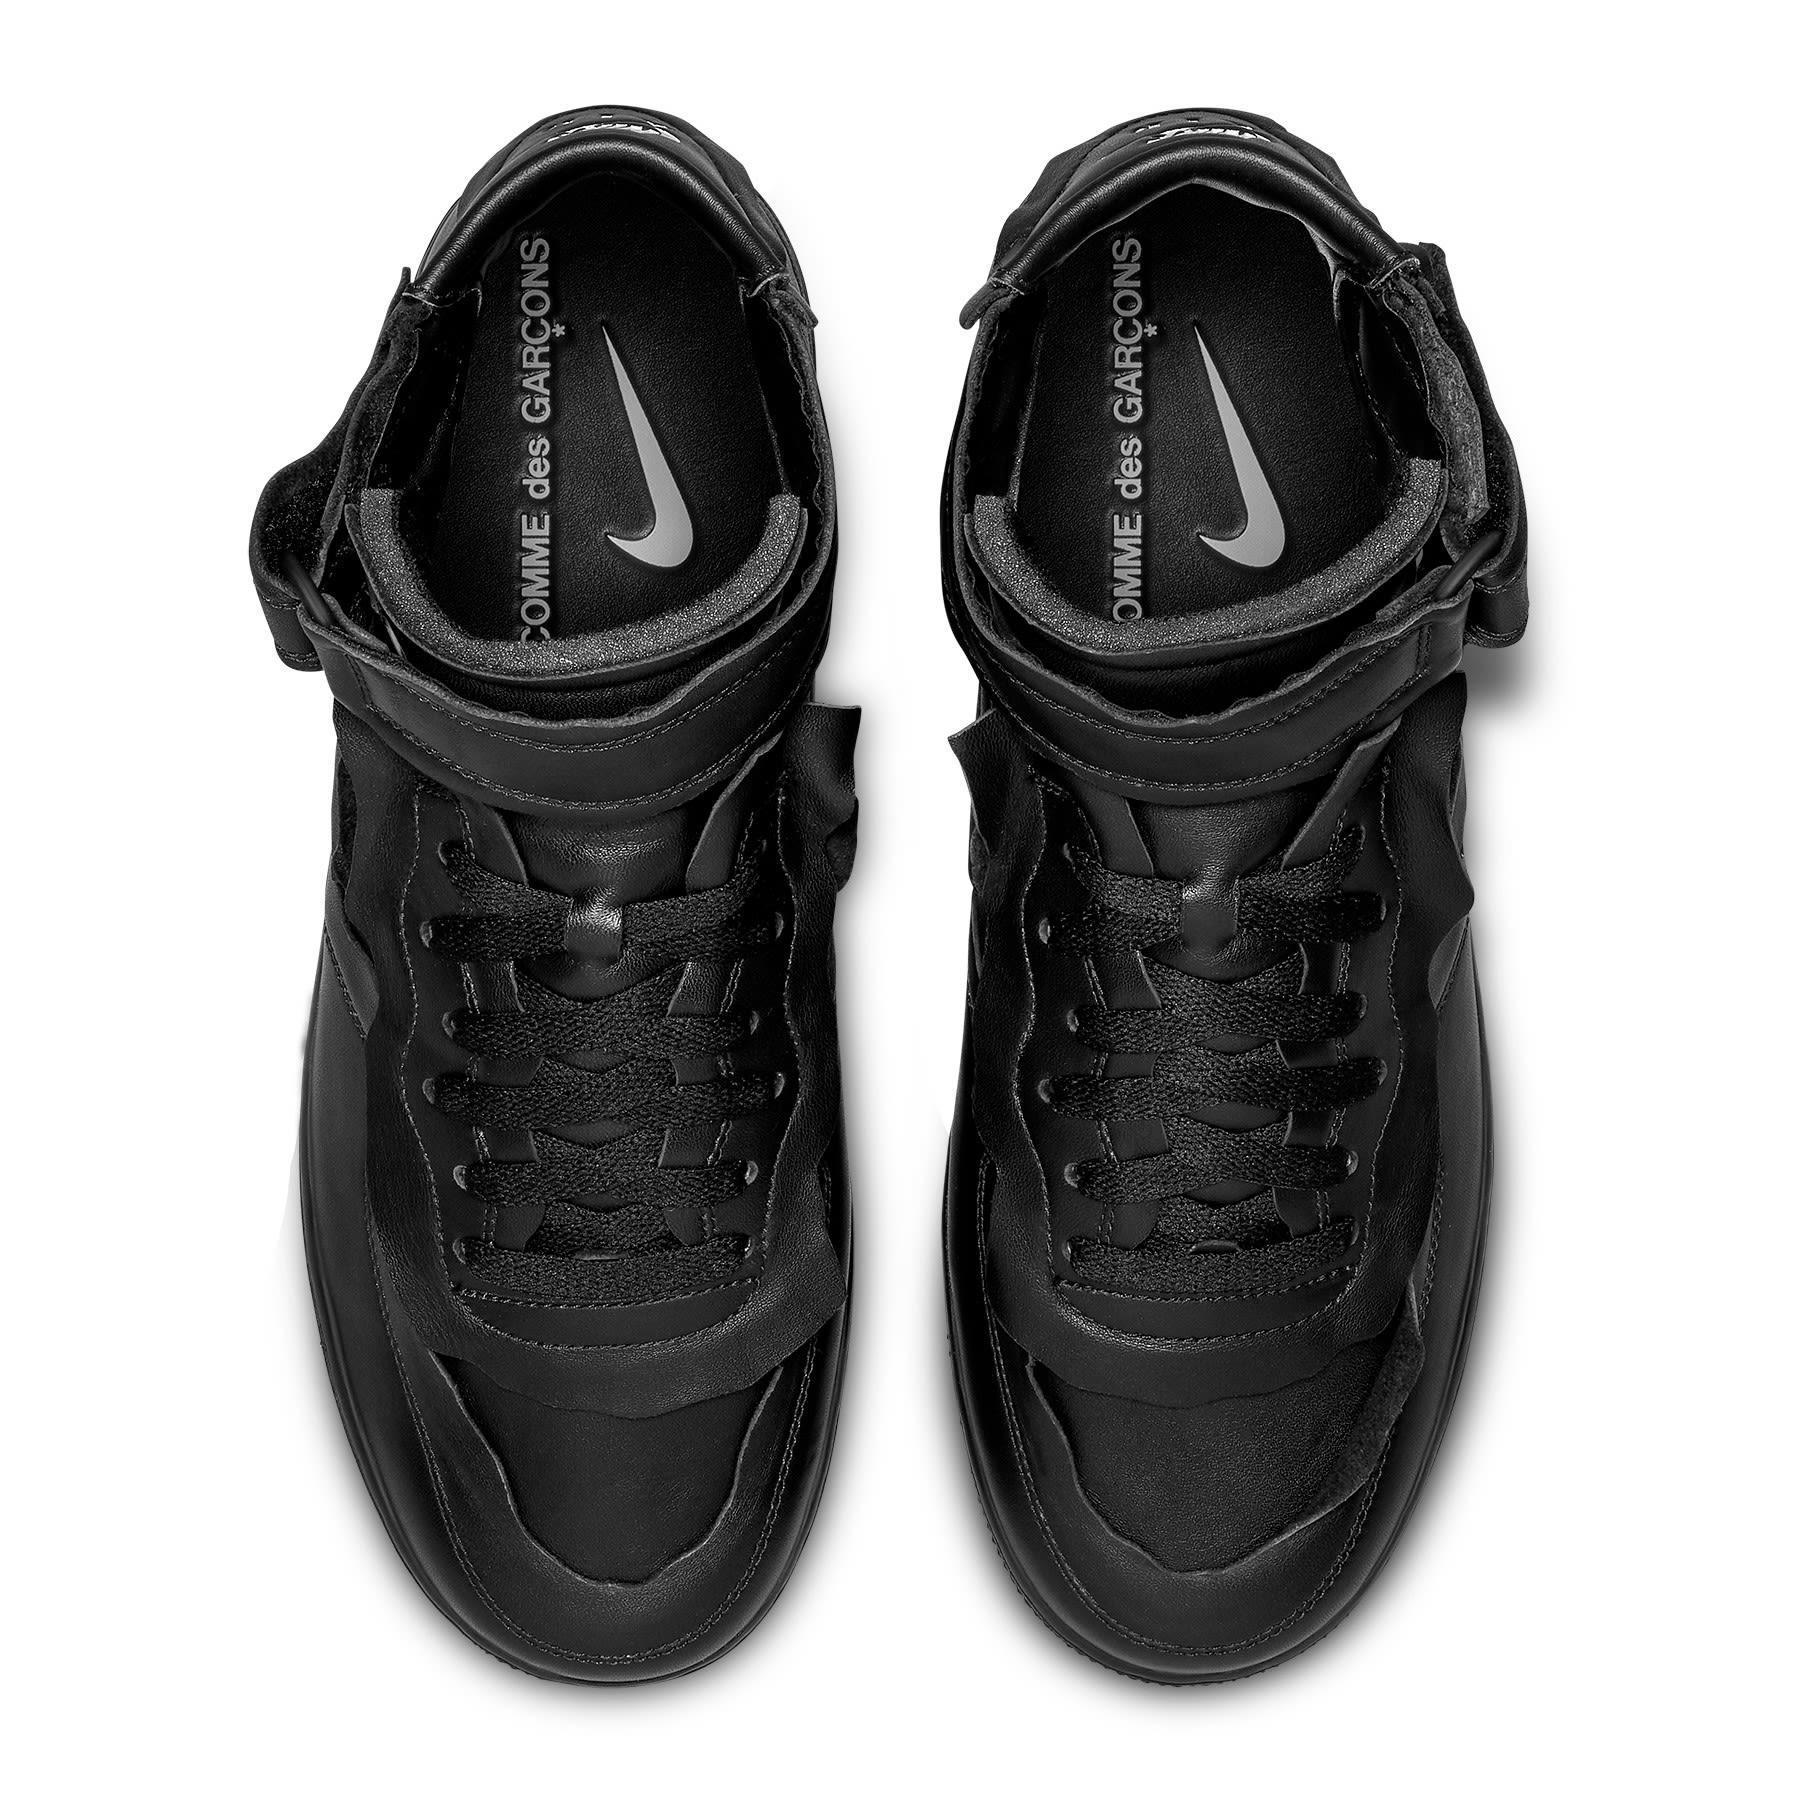 Comme Des Garcons x Nike Air Force 1 Mid 'Black' F/W 20 Top